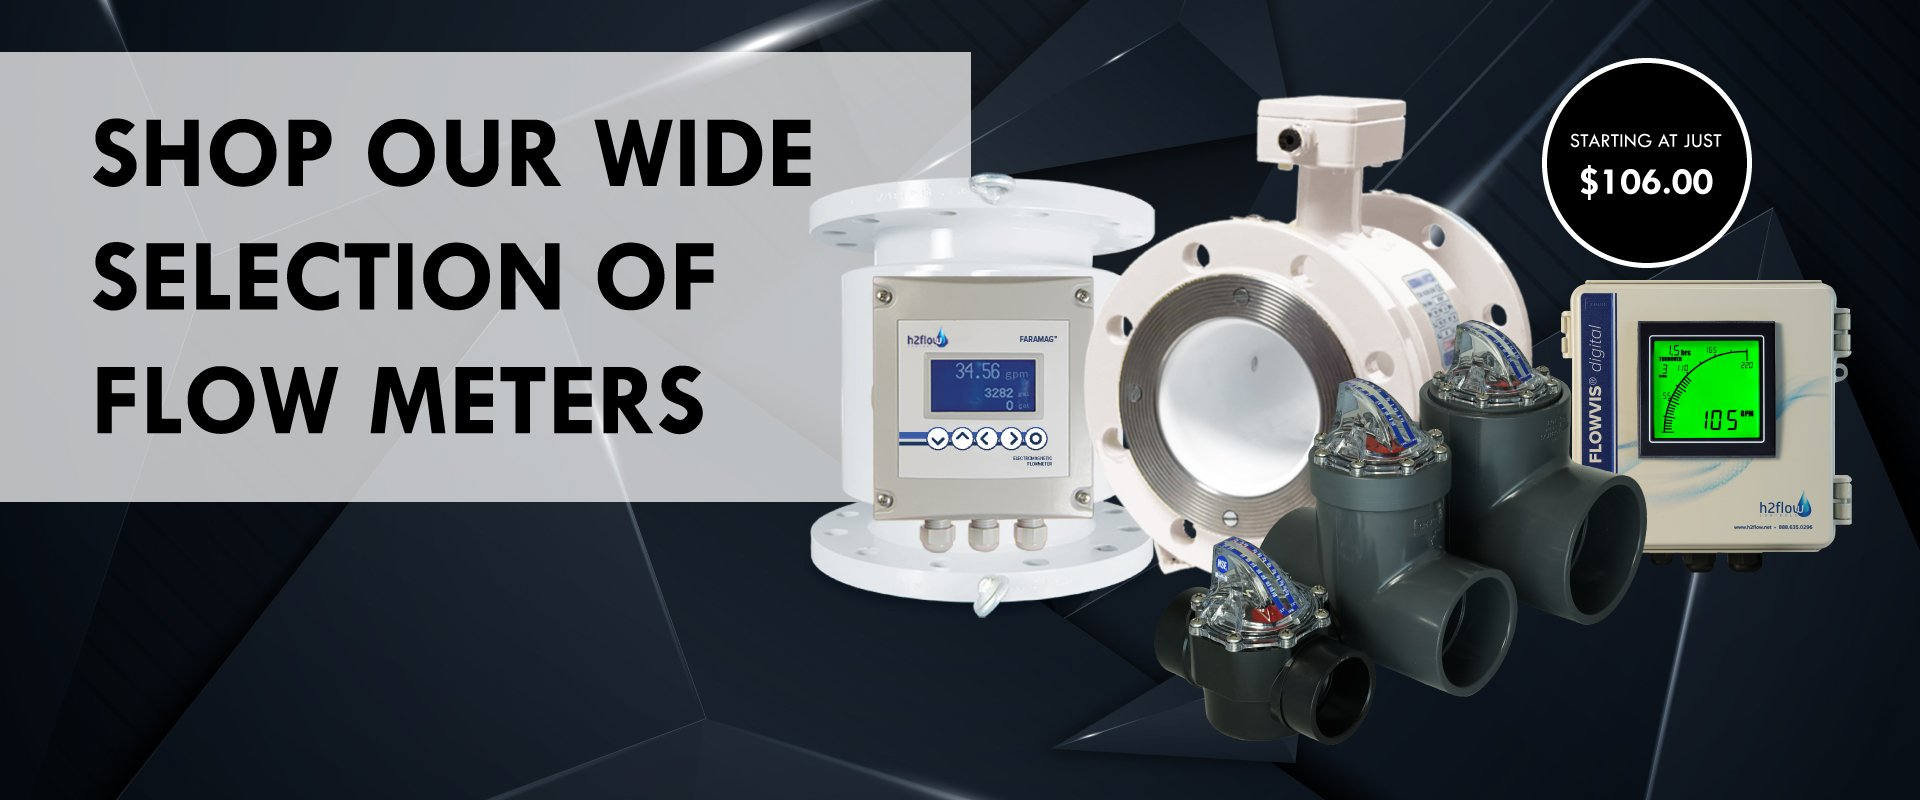 Accurate flow meters